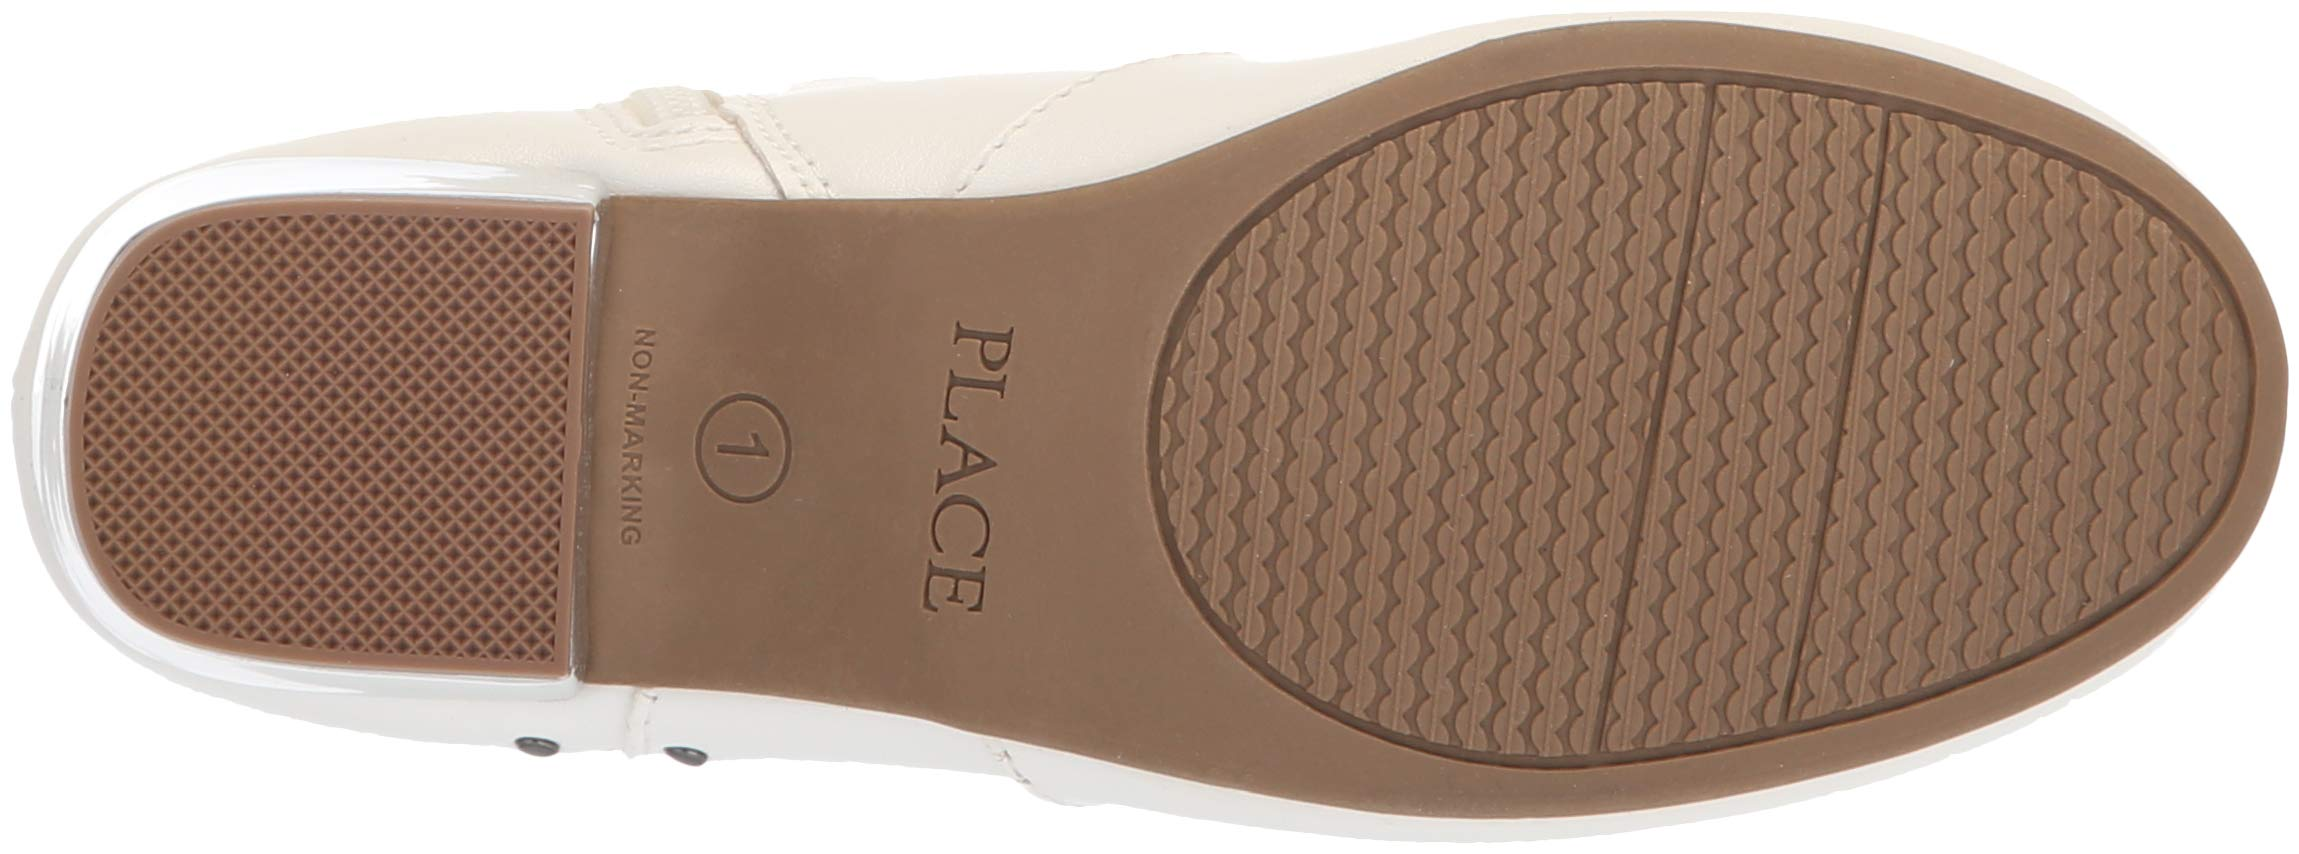 The Children's Place Girls' Bootie Fashion Boot, White, Youth 3 Child US Little Kid by The Children's Place (Image #3)